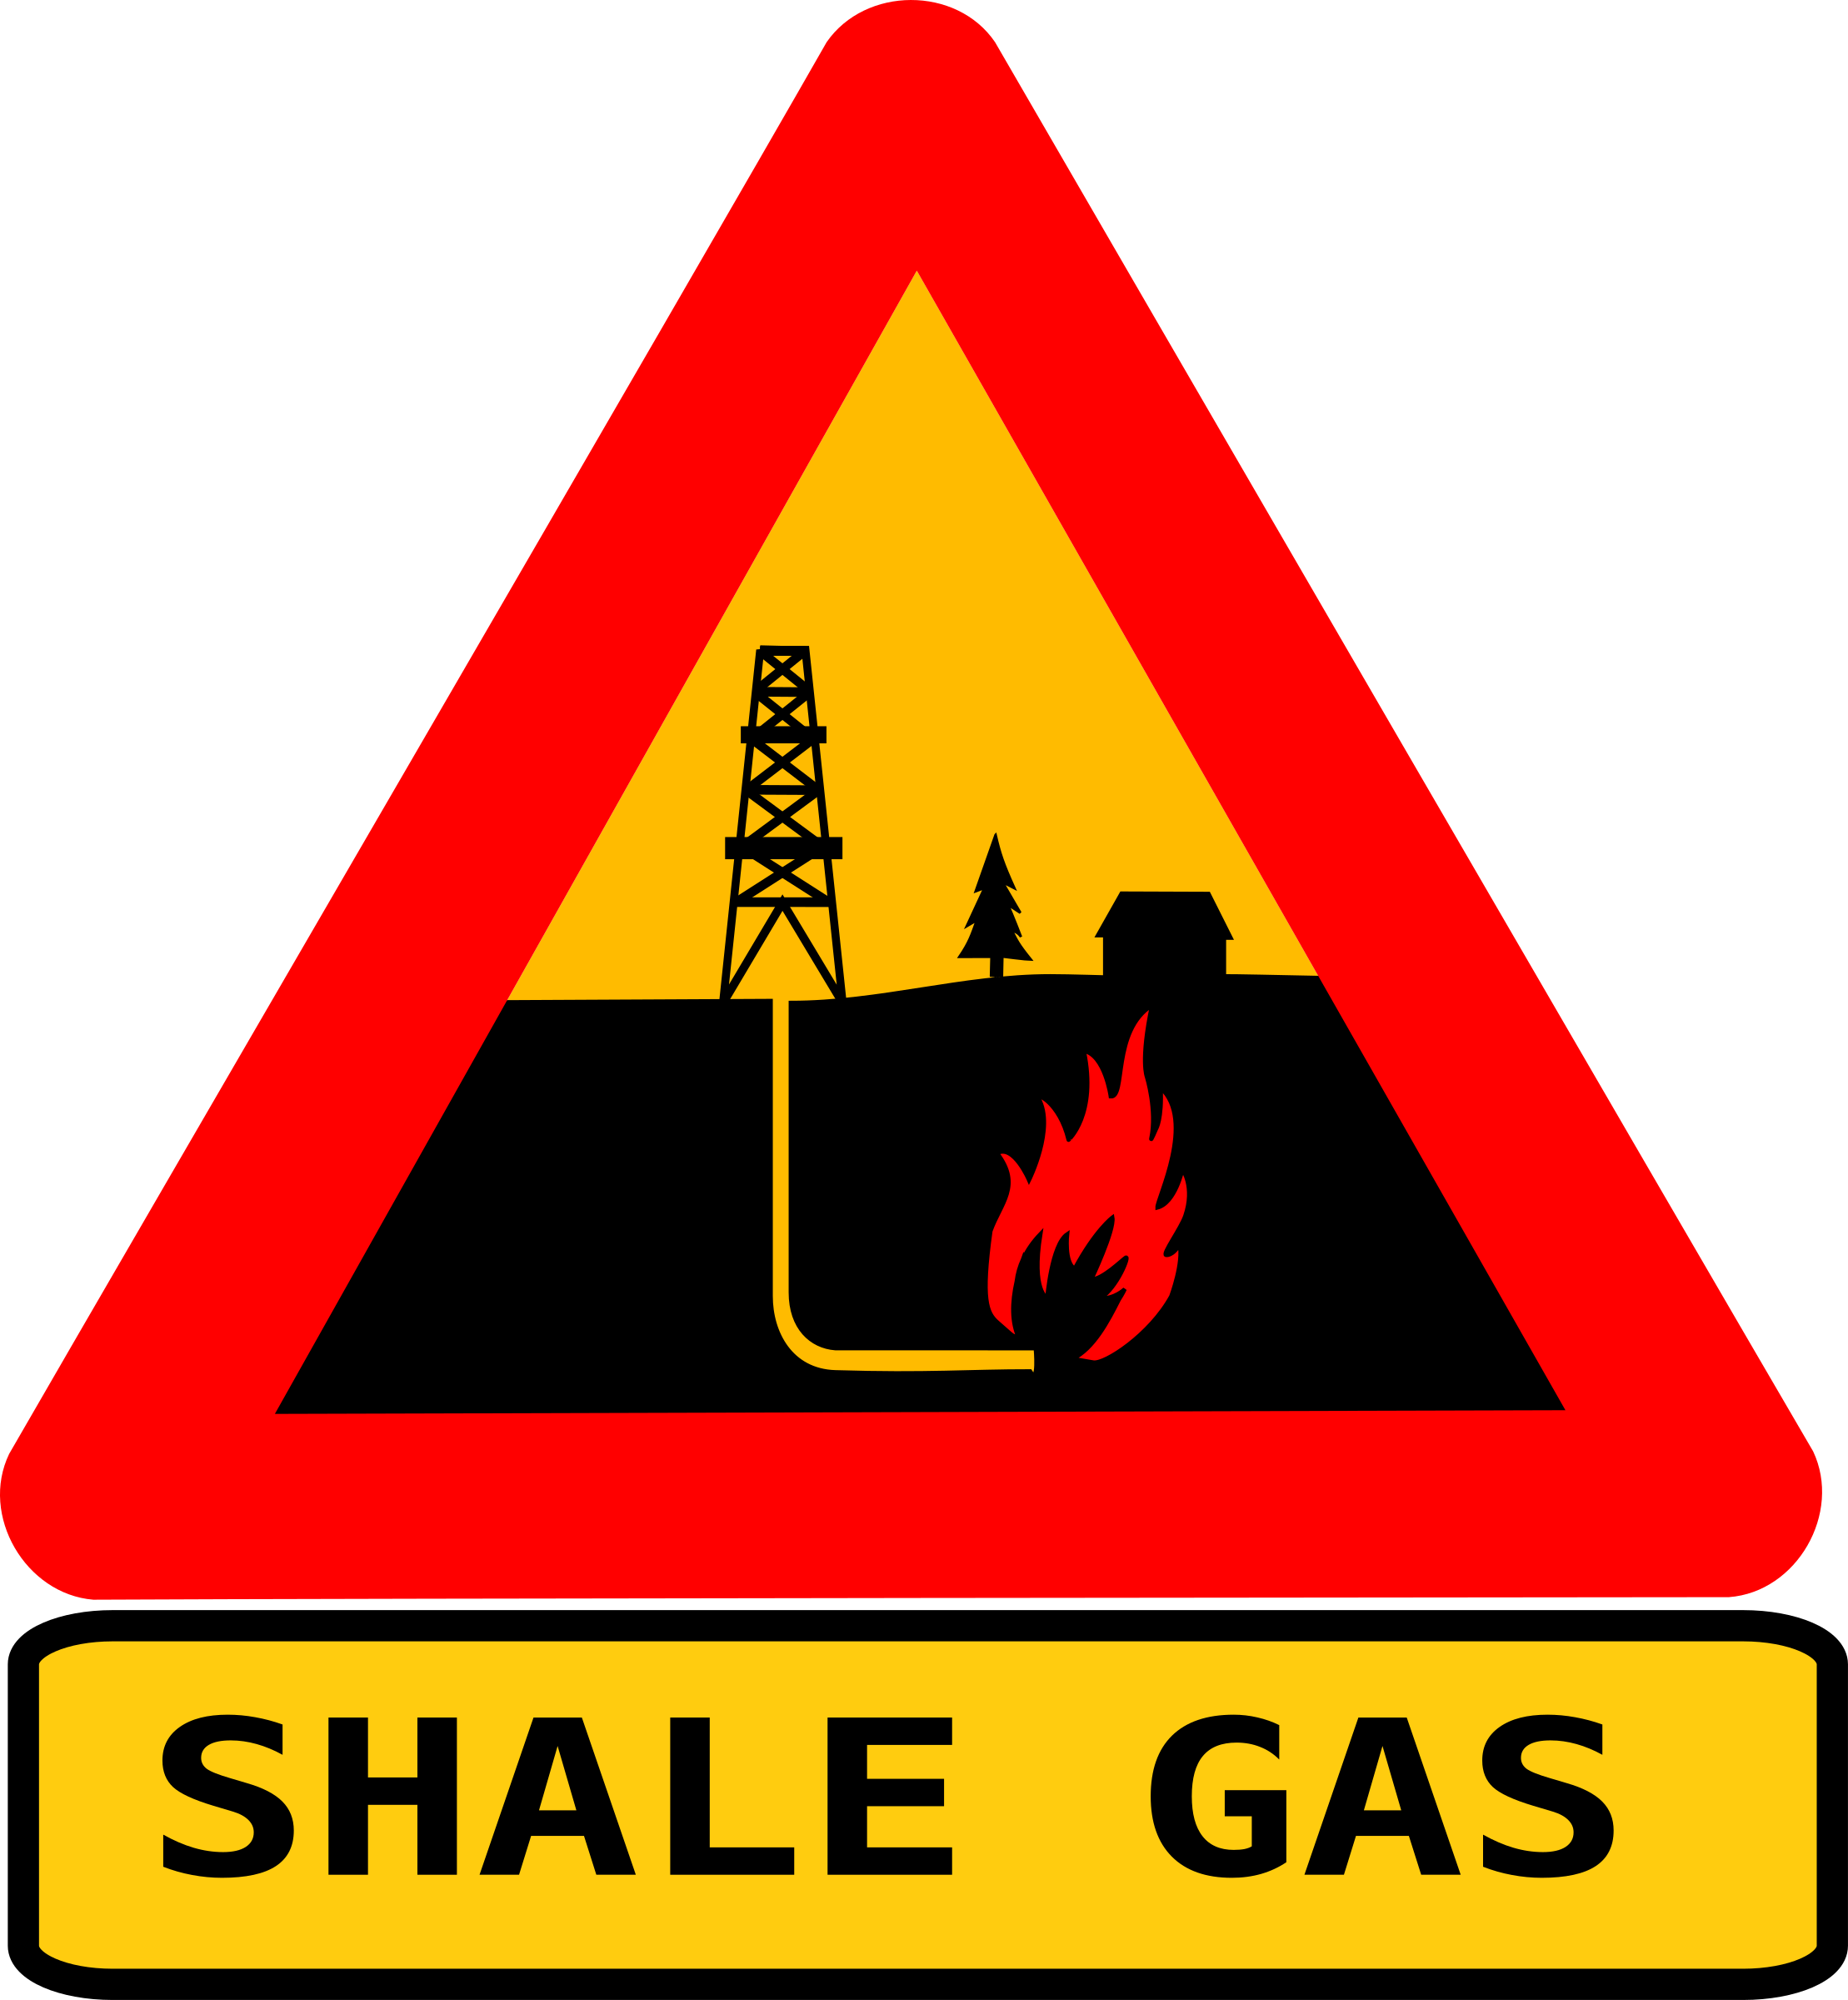 Warning shale gas with text by dominiquechappard